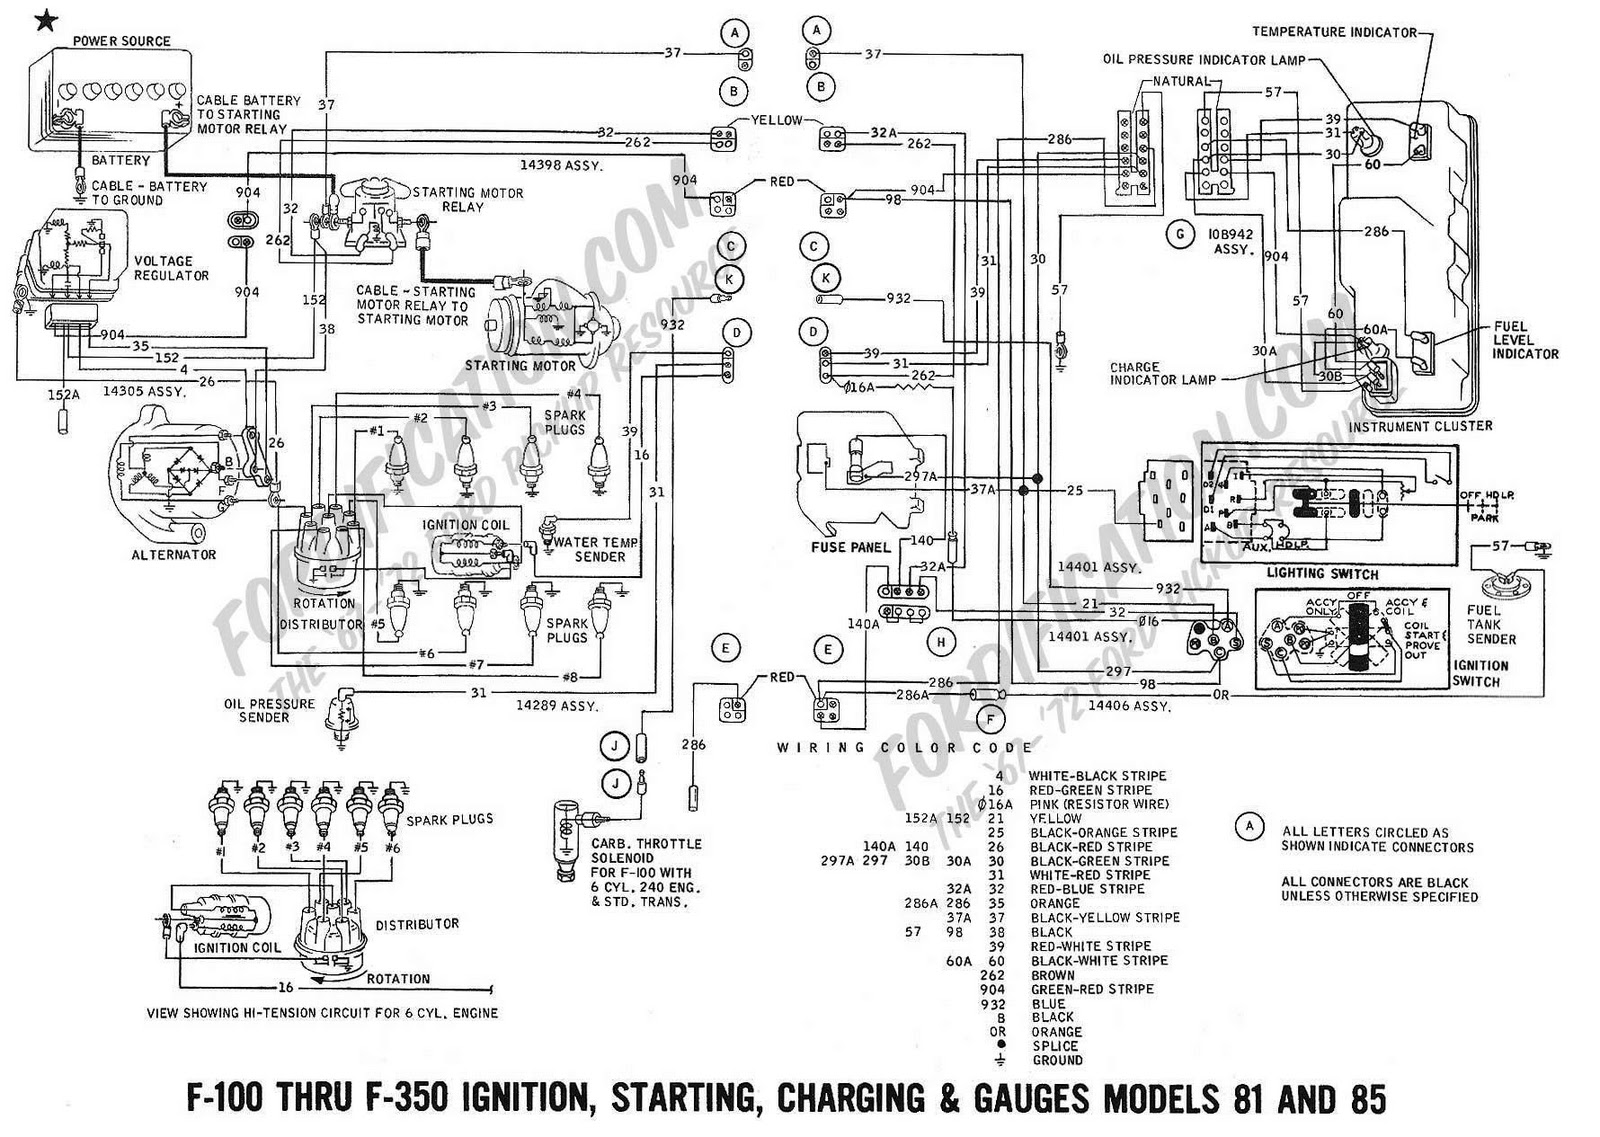 f100 wiring diagram wiring diagram online 1953 F100 Wiring Diagram 1981 ford f100 wiring diagram wiring diagram data 1950 plymouth engine wiring diagram 81 ford f100